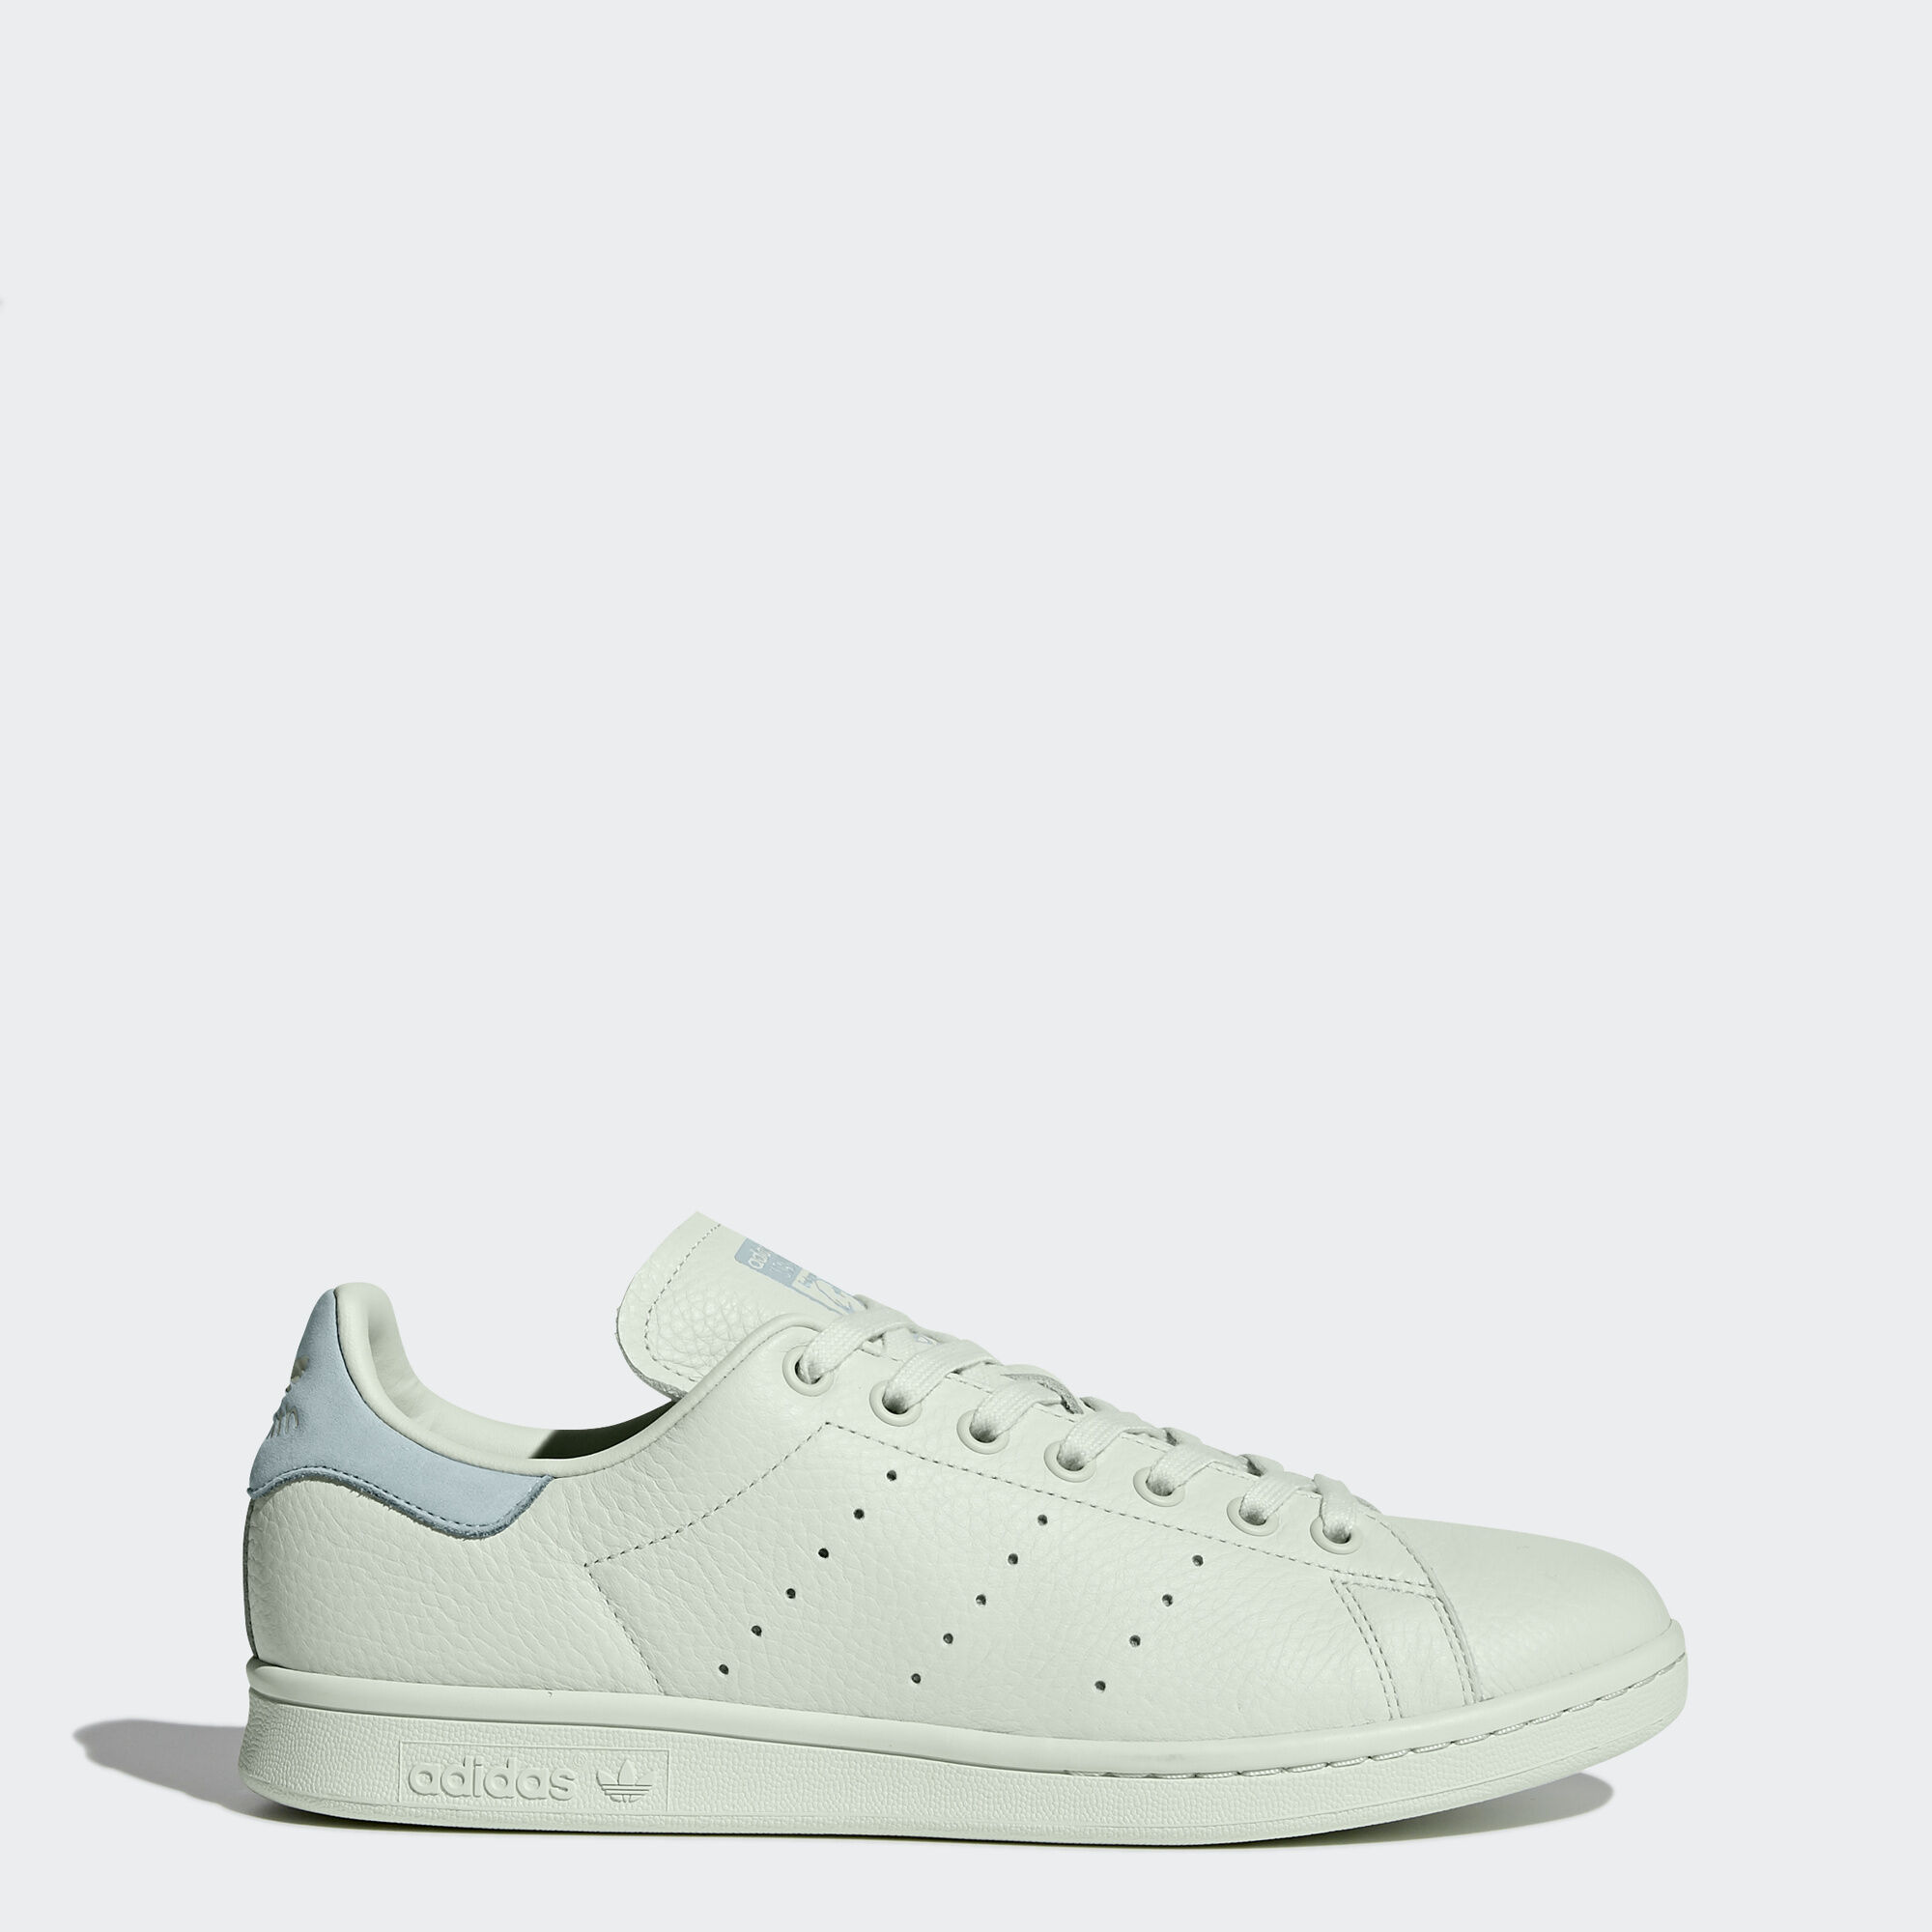 adidas court vantage shoes